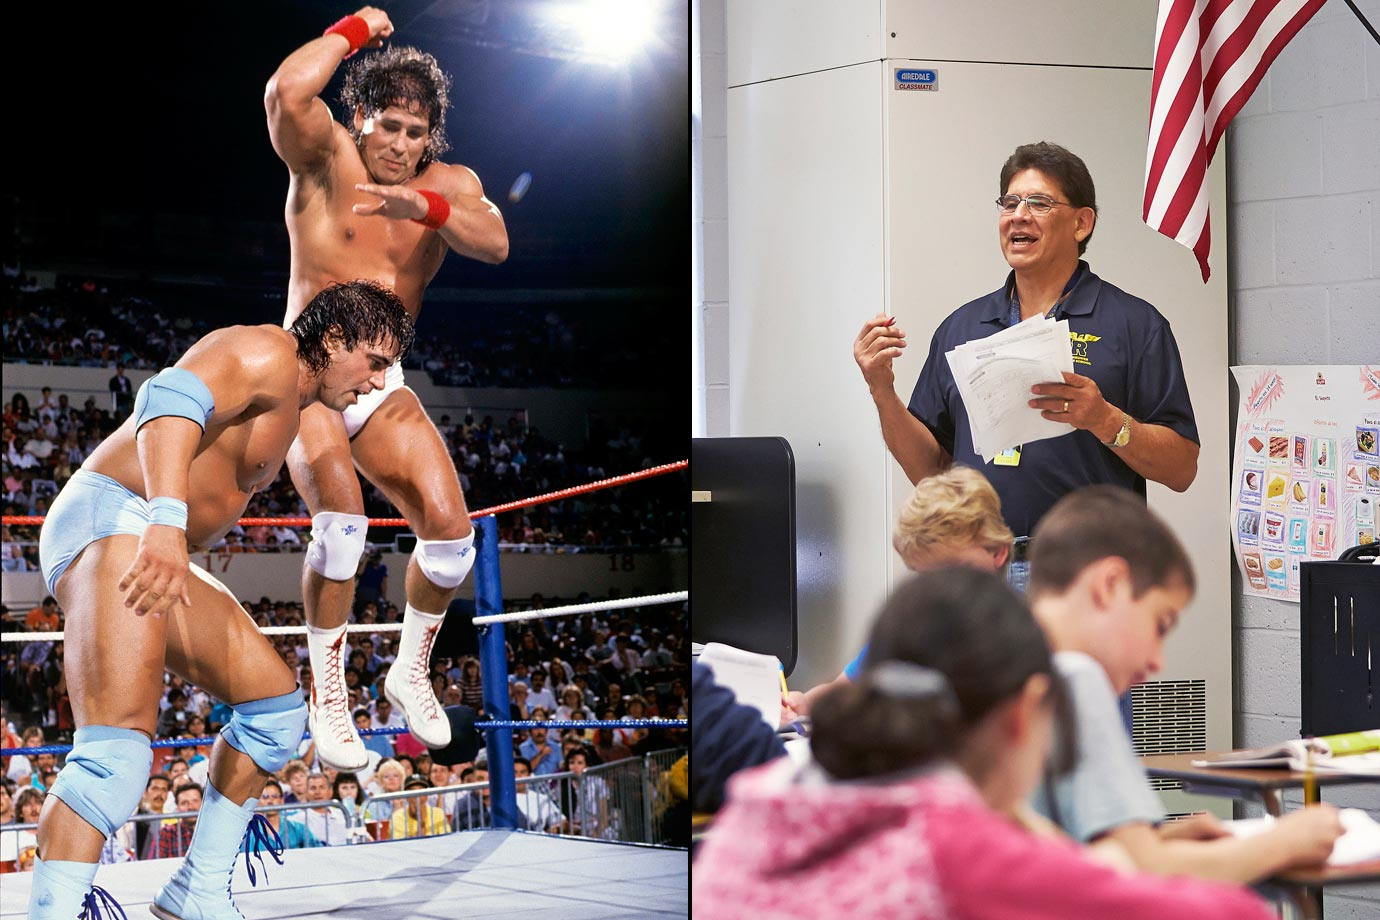 A quick study in the ring, the former wrestling star now focuses on teaching at-risk kids the value of an education. A fiery and entertaining performer, Santana dominated opponents for almost two decades before finding his second calling as a teacher.